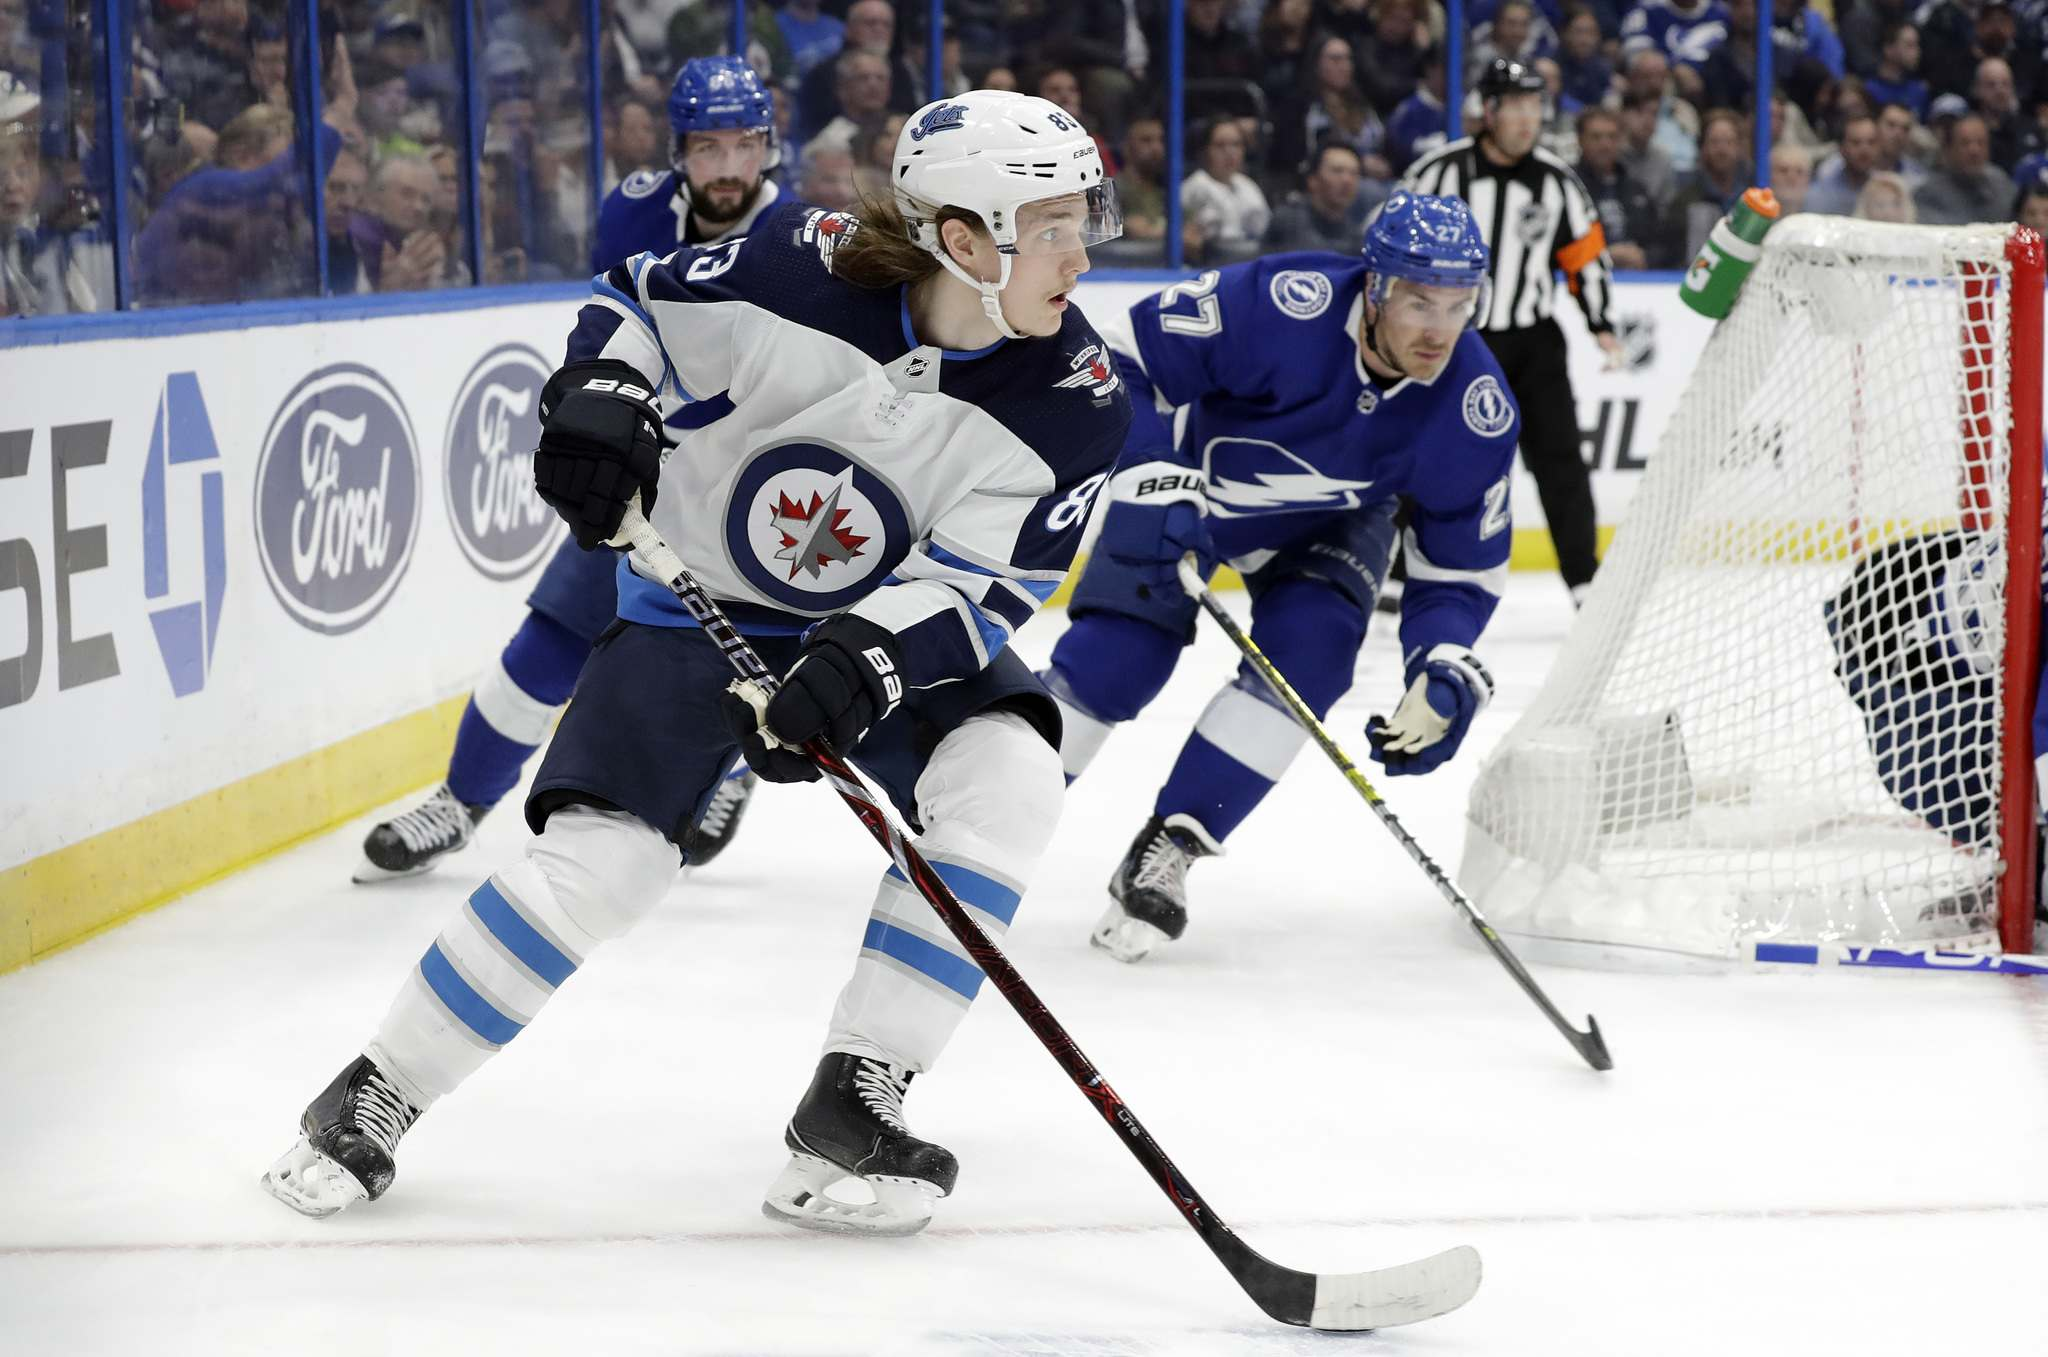 Sami Niku played some games with the Jets when they needed him, but with a healty defensive roster, he's a healthy scratch. (Chris O'Meara / The Associated Press files)</p>